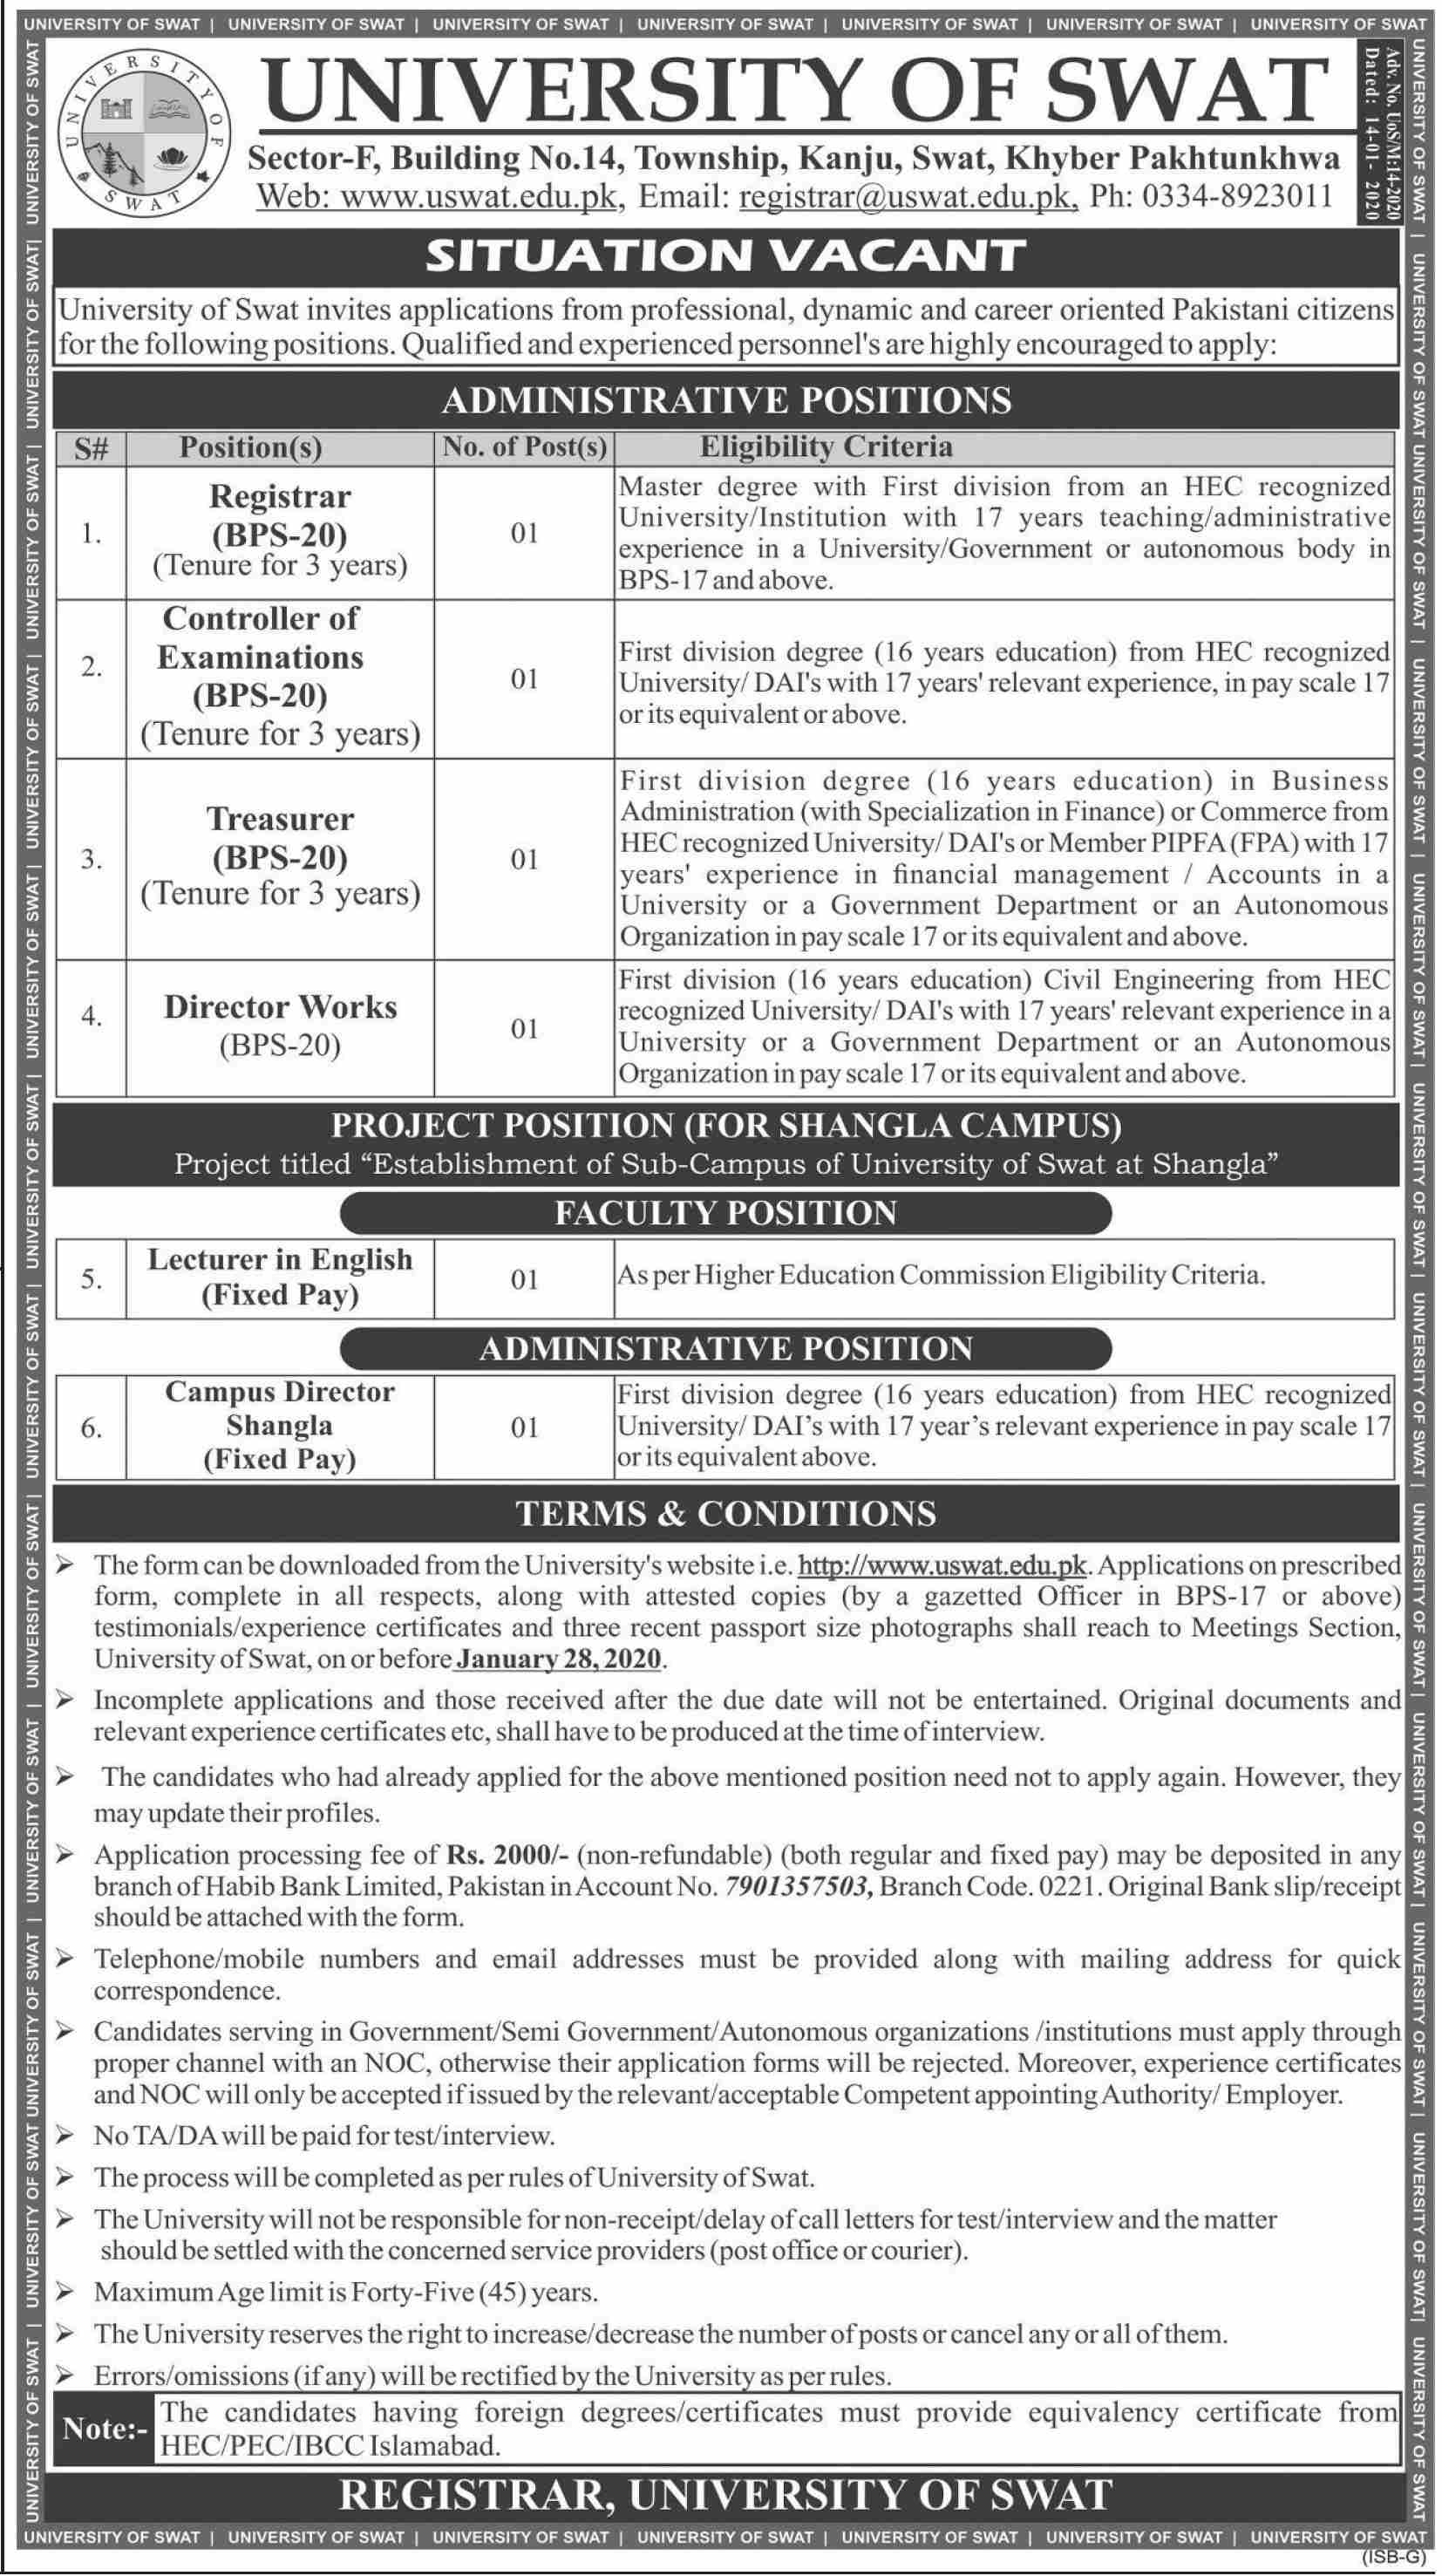 University Of Swat jobs newspaper ad for English Lecturer in Swat